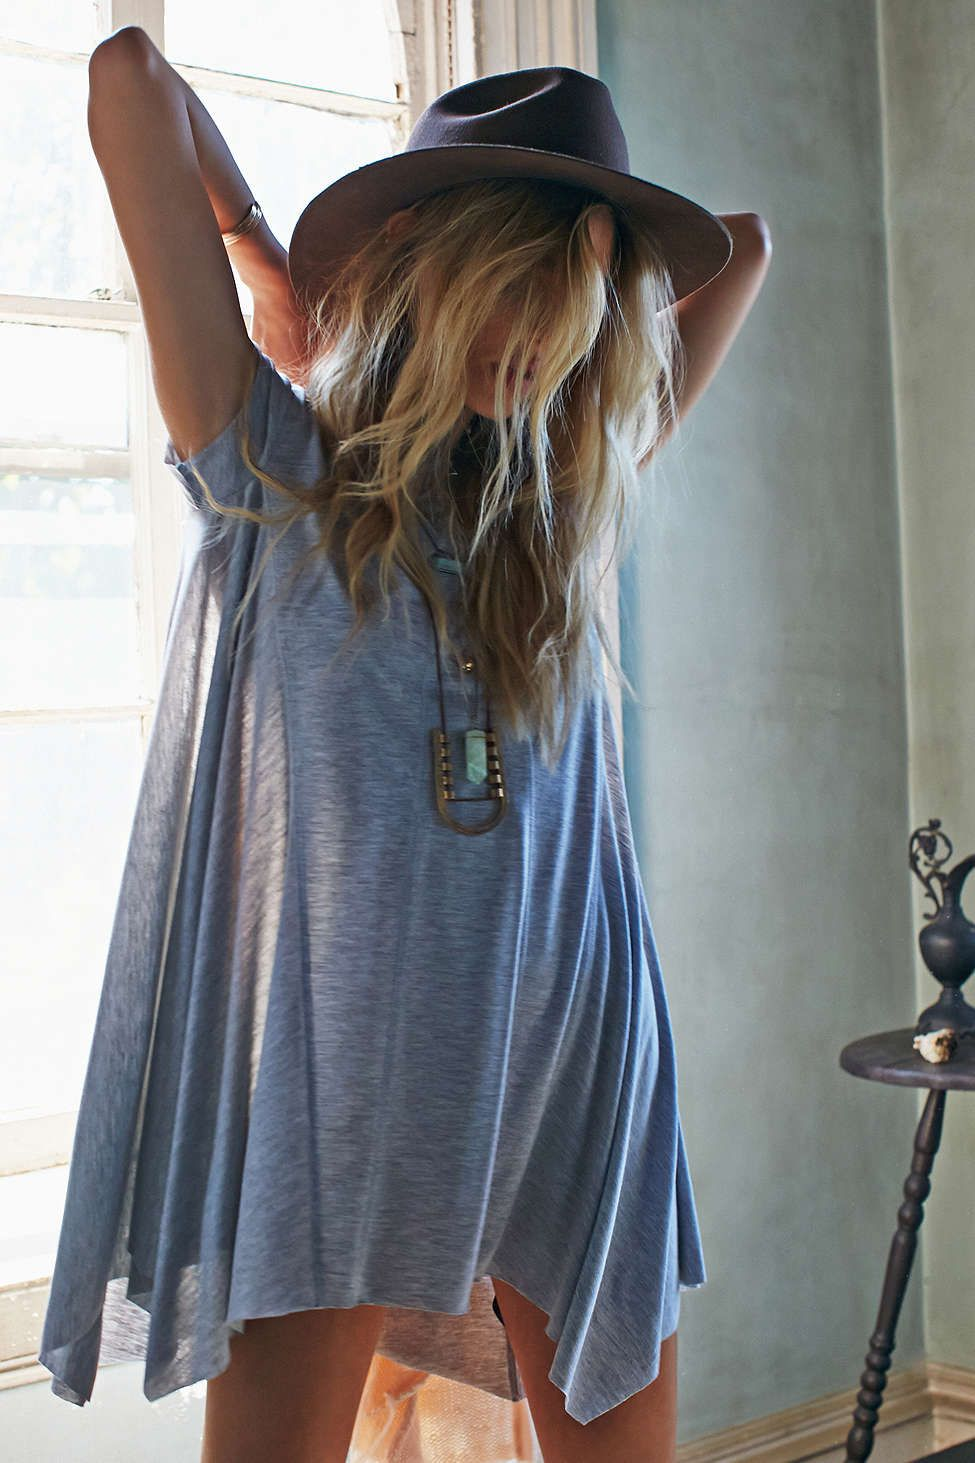 Bdg carina oversized tshirt dress boho clothes and floppy hats